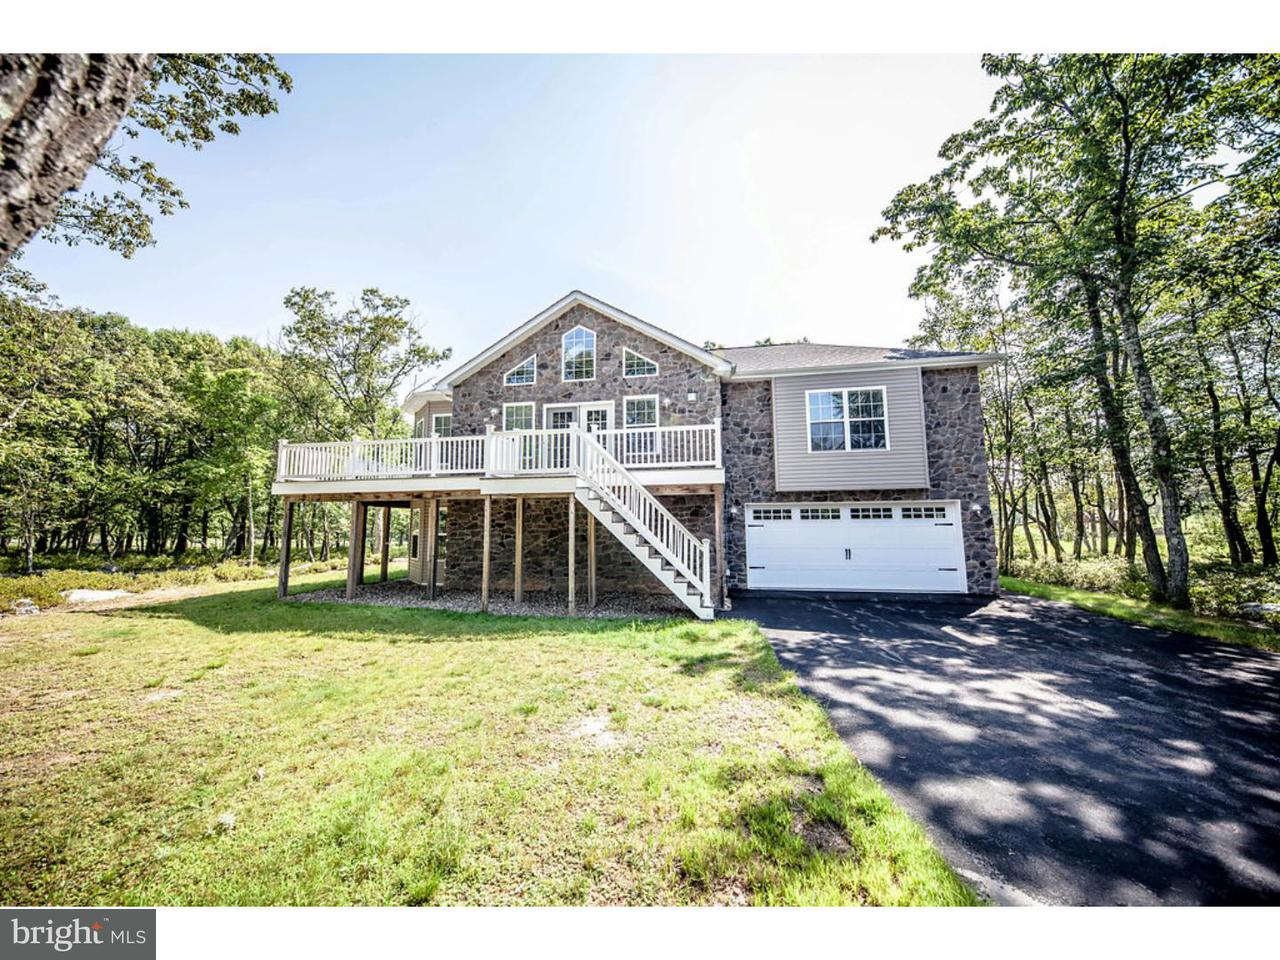 Single Family Home for Sale at 153 WILD GINGER WAY Hazle Township, Pennsylvania 18202 United States